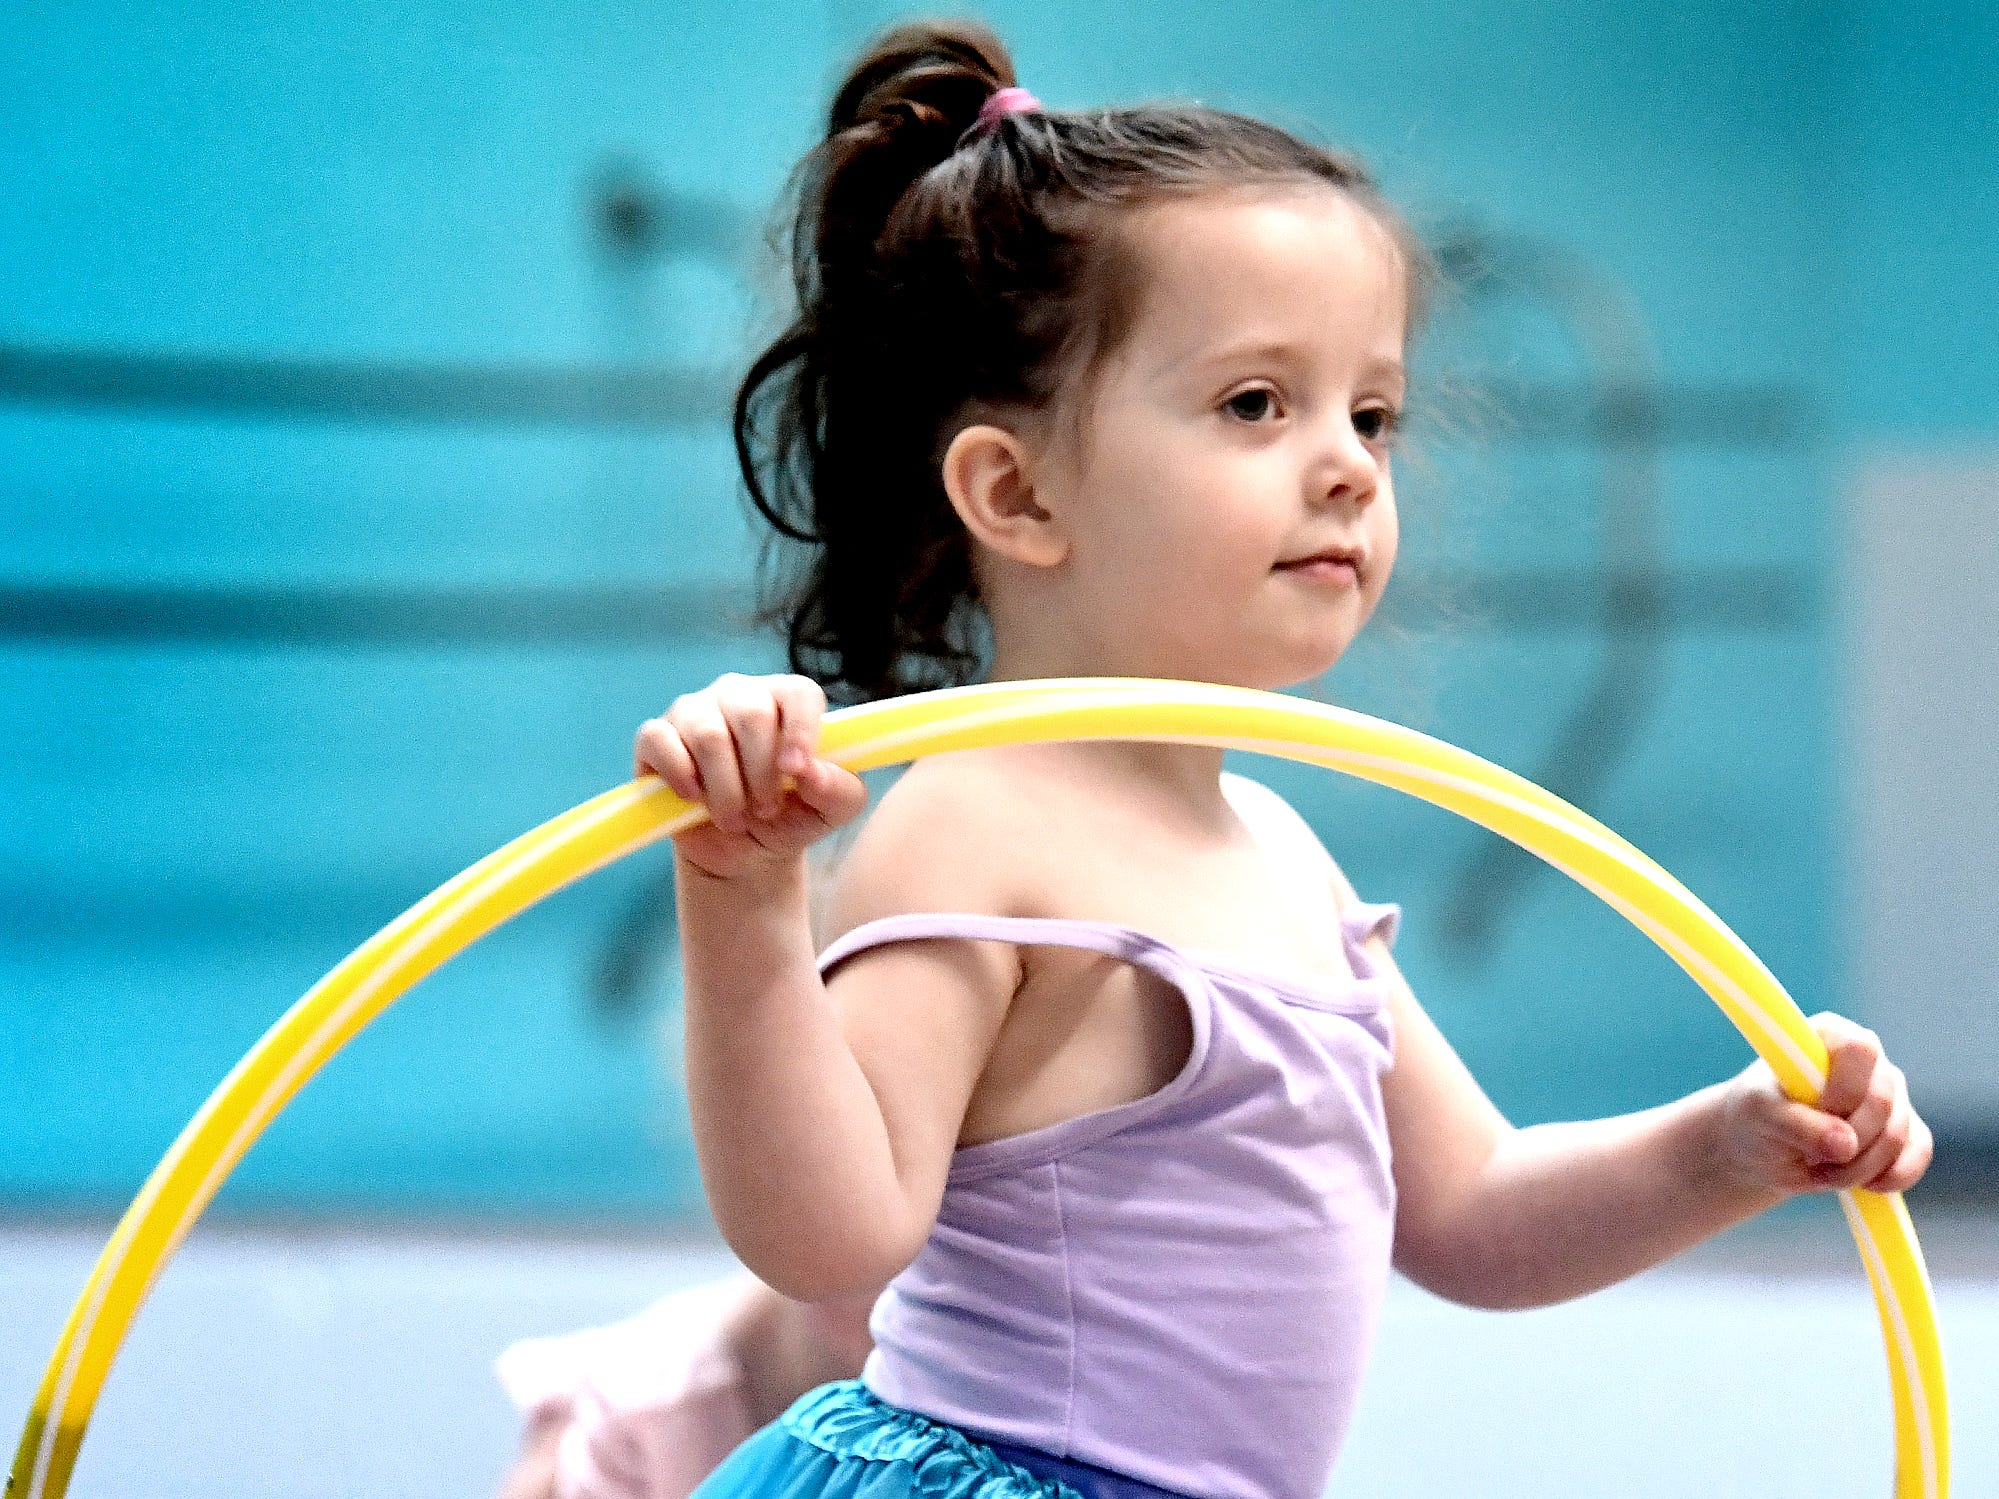 Gracie Higgins, 2, of York Haven, dances with a hula hoop during the Twinkle Babies class at Greater York Dance Thursday, April 4, 2019. The four-week program, for children aged 2 to 4, is part of the Twinkle Star Dance Program for early childhood dancers. Bill Kalina photo